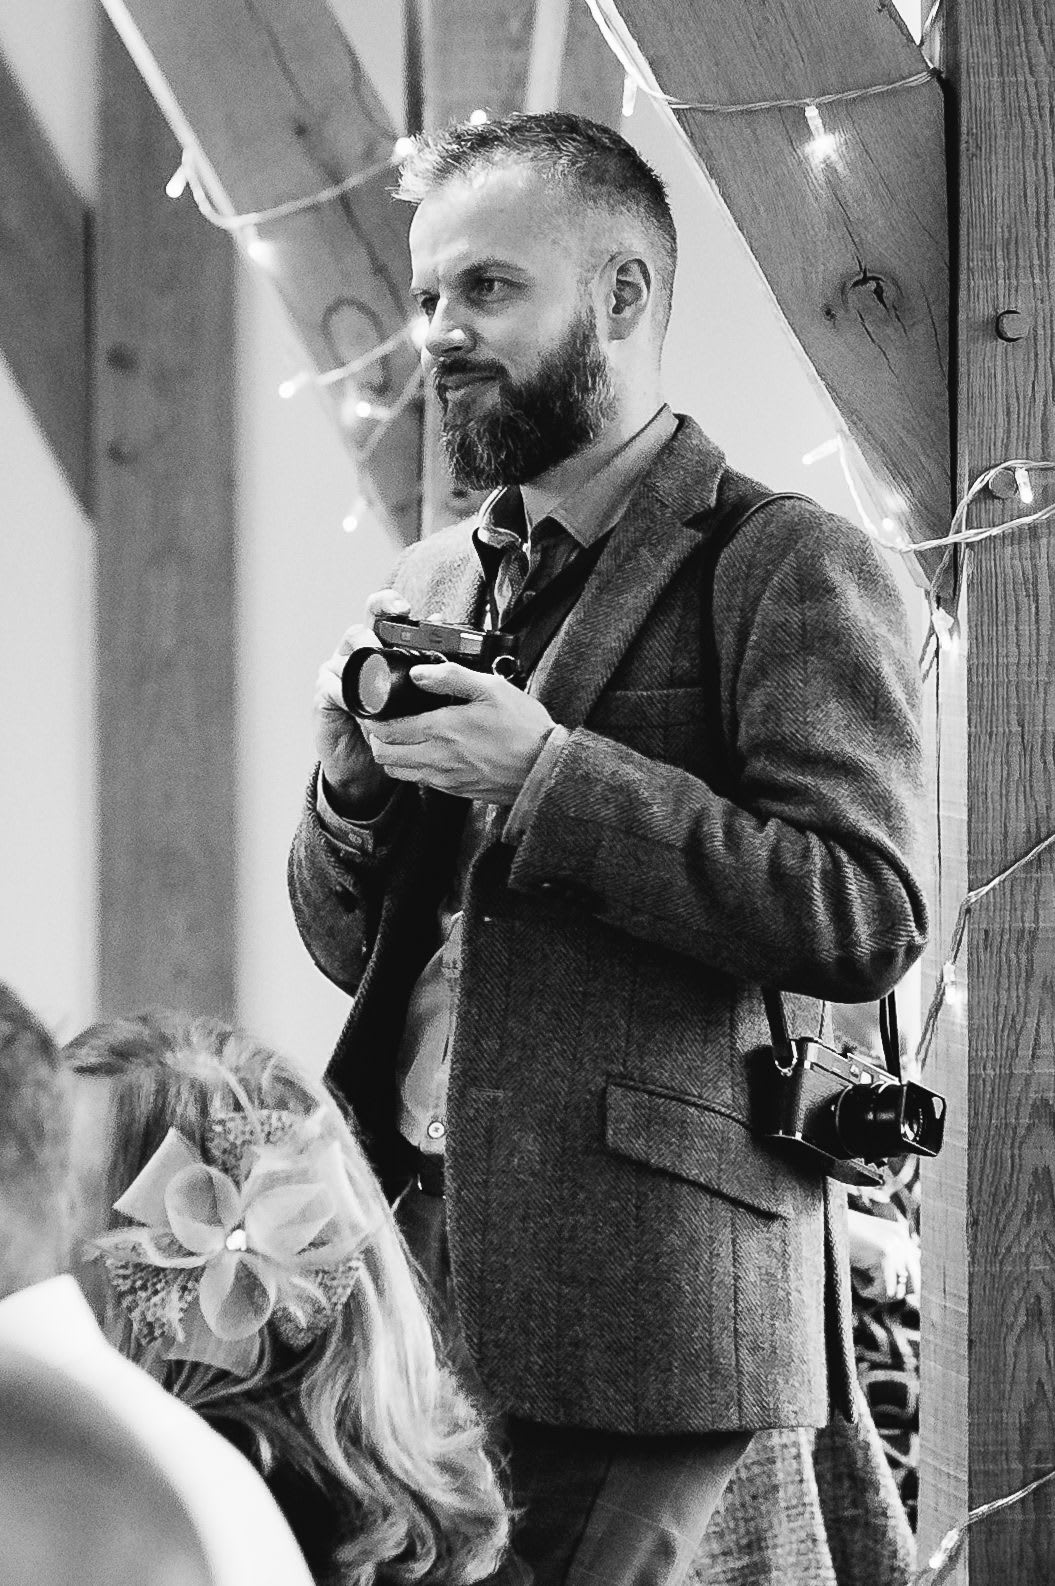 Wedding photographer from Bedford